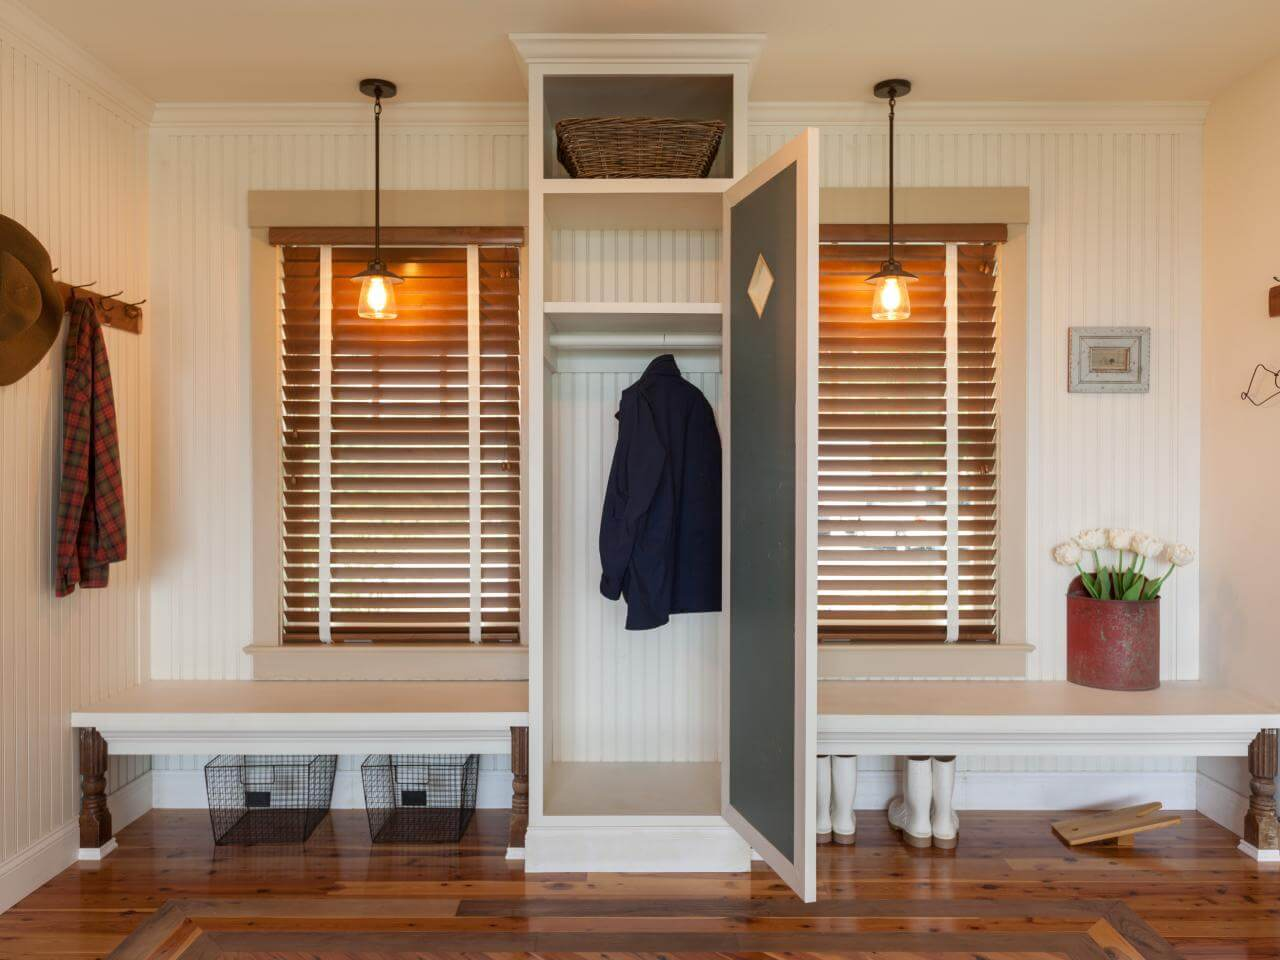 45 Superb Mudroom Amp Entryway Design Ideas With Benches